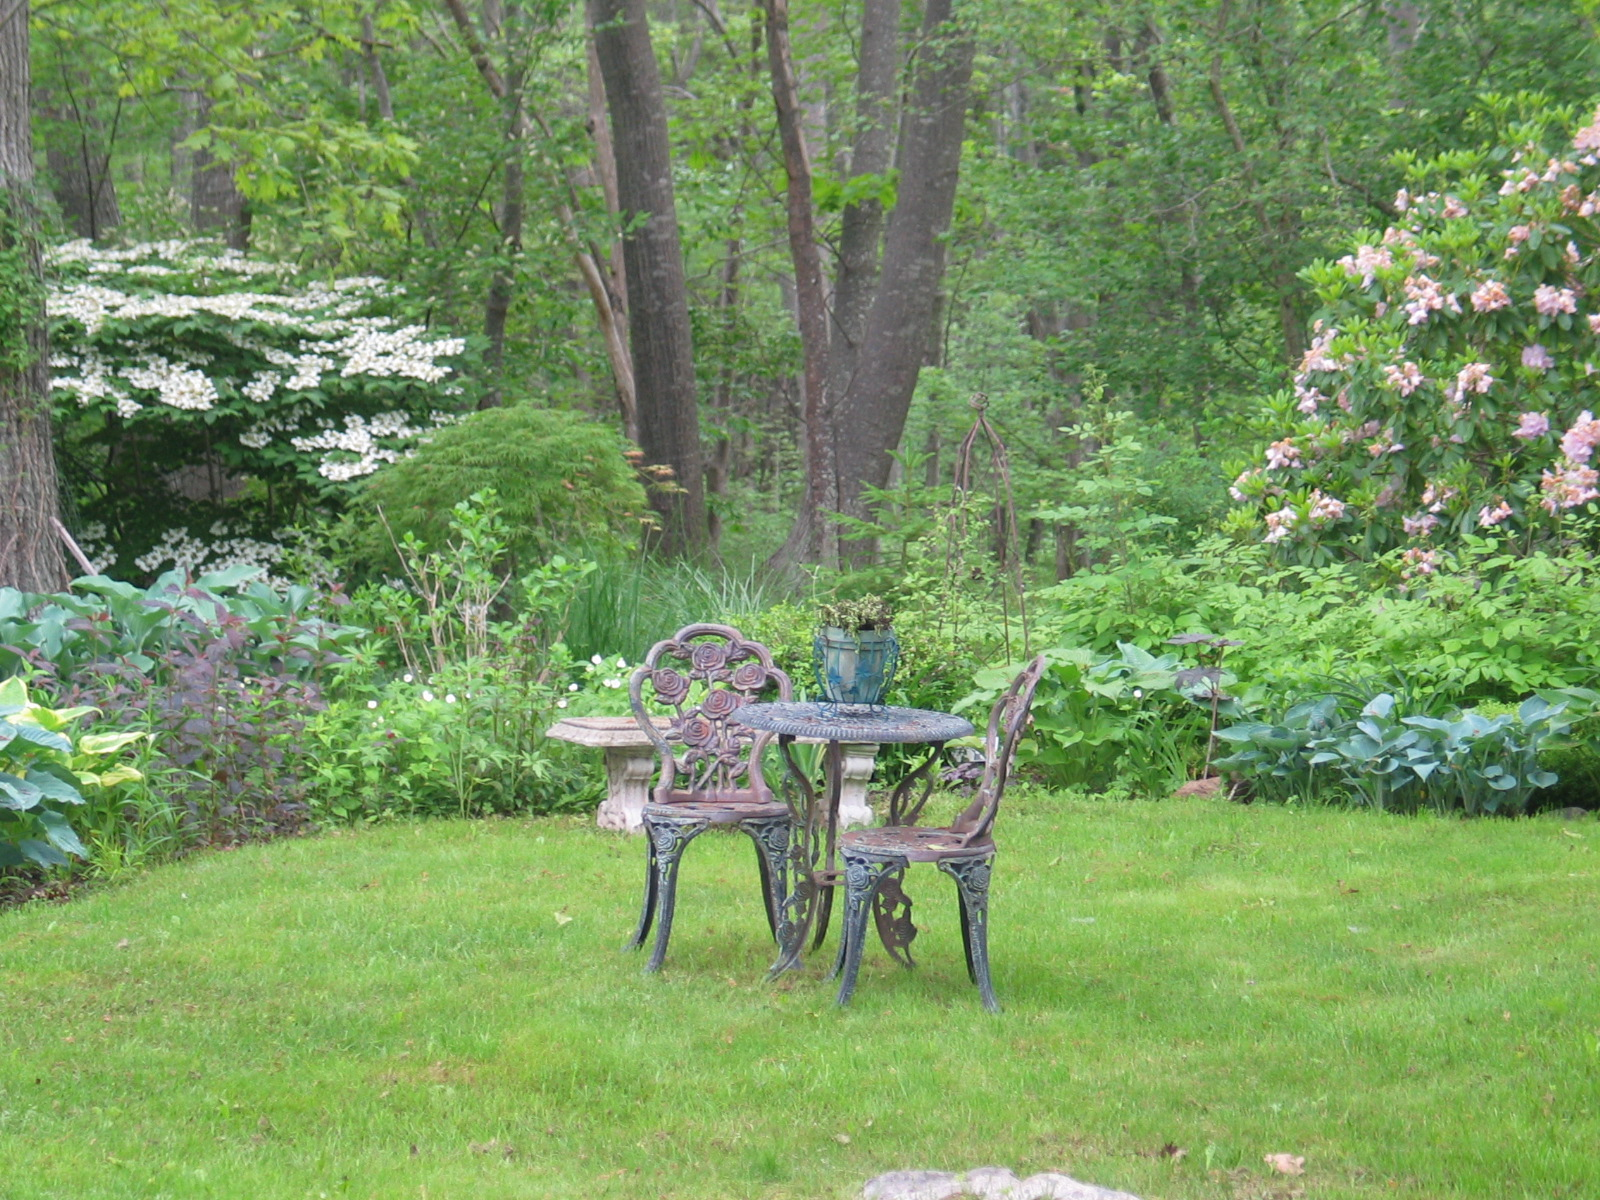 My backyard garden with wrought iron table at the center on the lawn